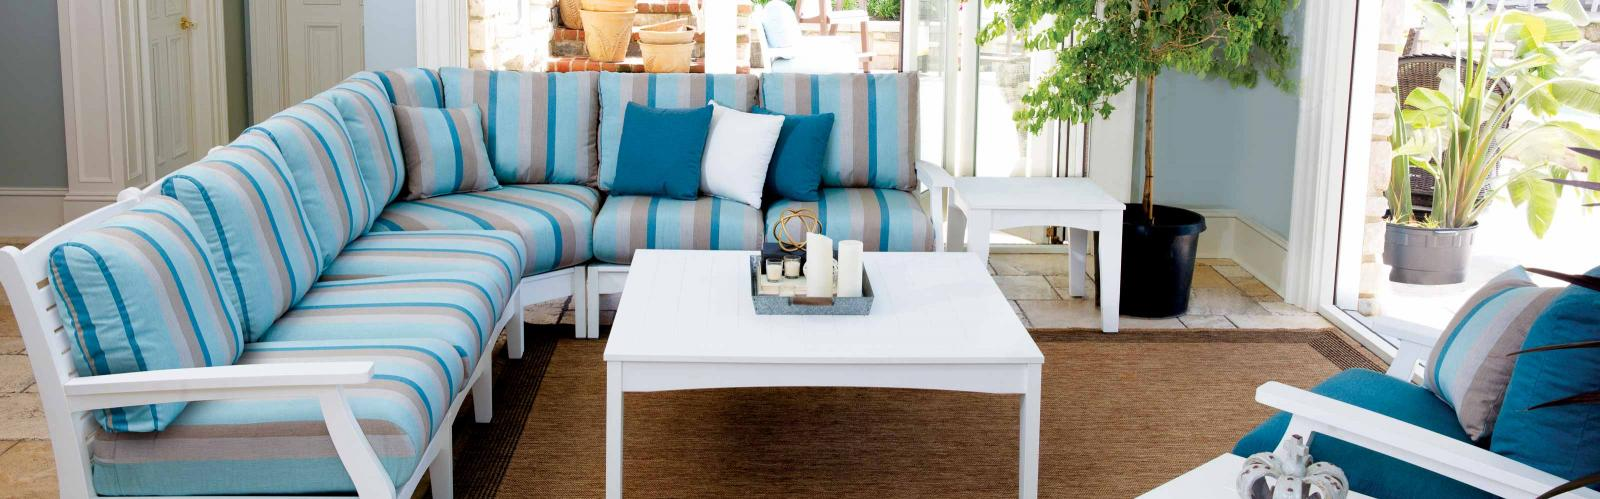 Miller's Mini Barns sells Berlin Gardens poly outdoor furniture